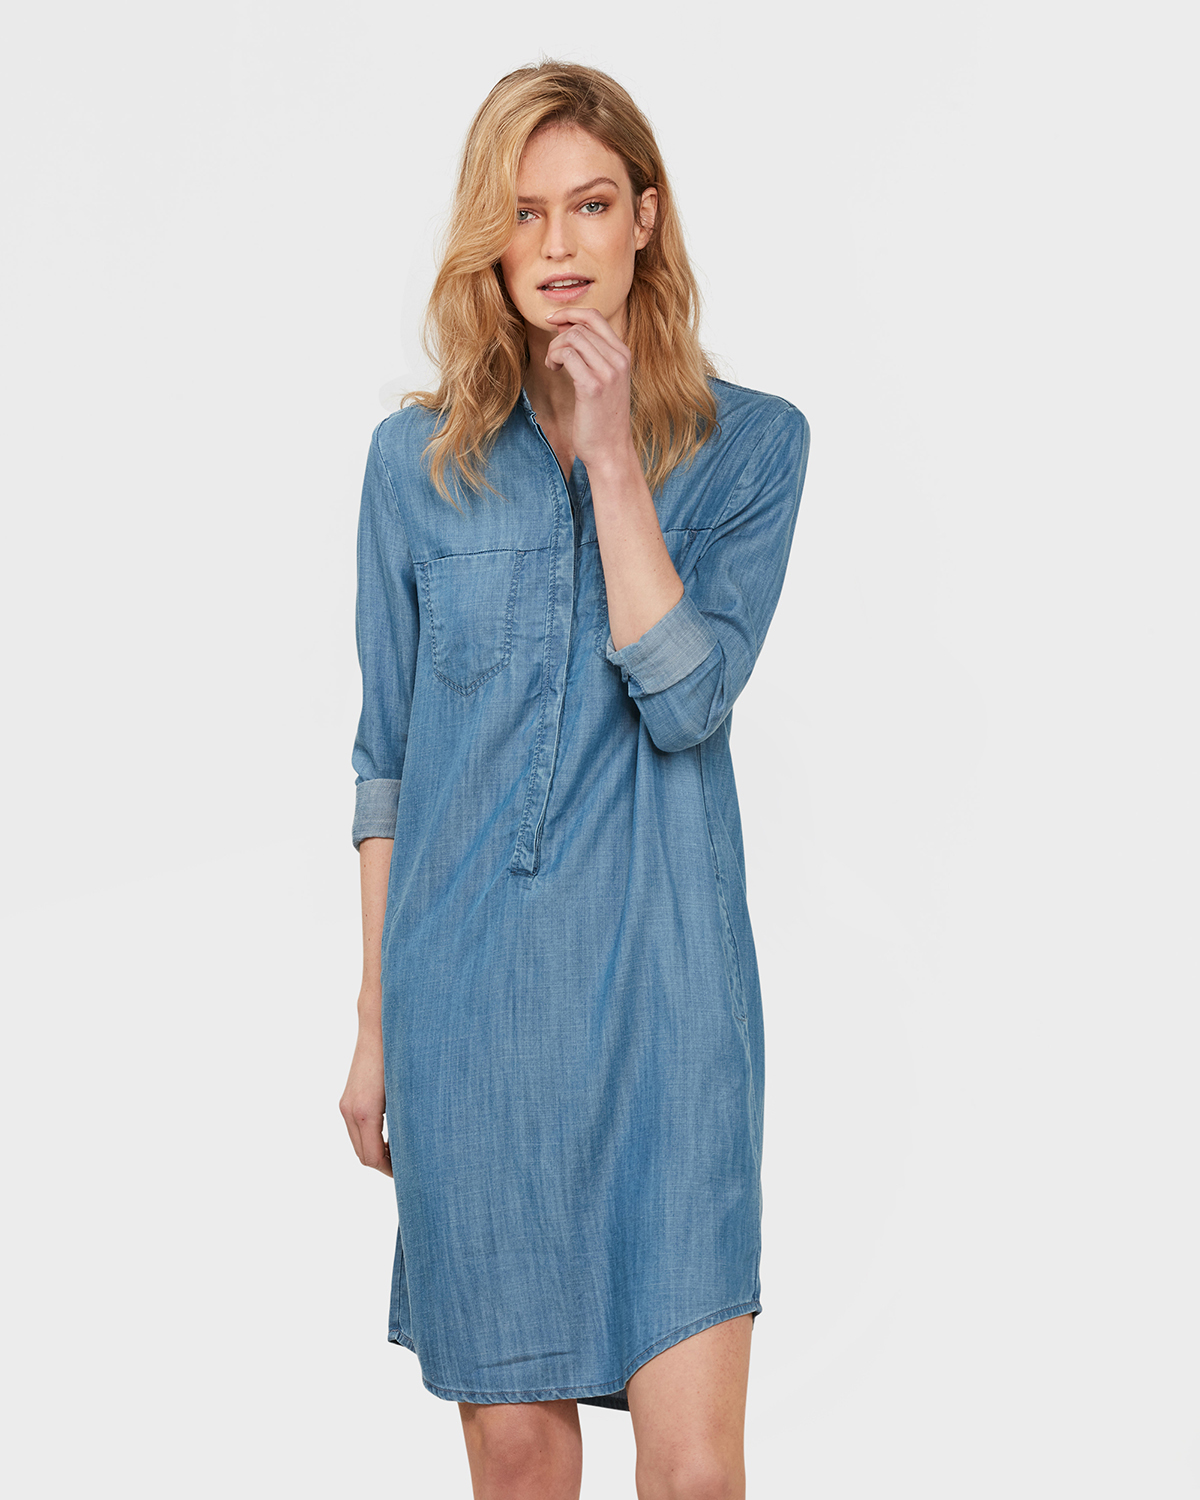 79661775 Robe Chemisier We Femme Denim Fashion qttRwrp